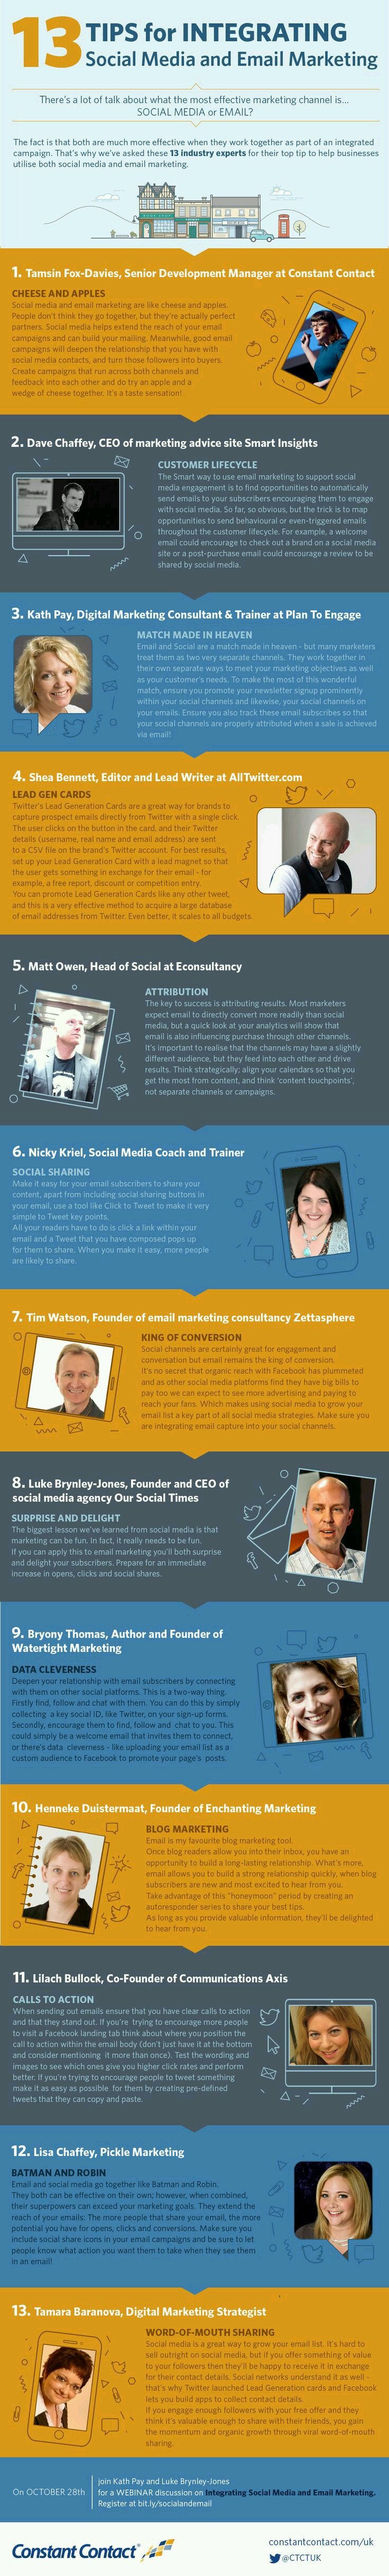 13 Tips for integrating Social Media and Email Marketing #infographic